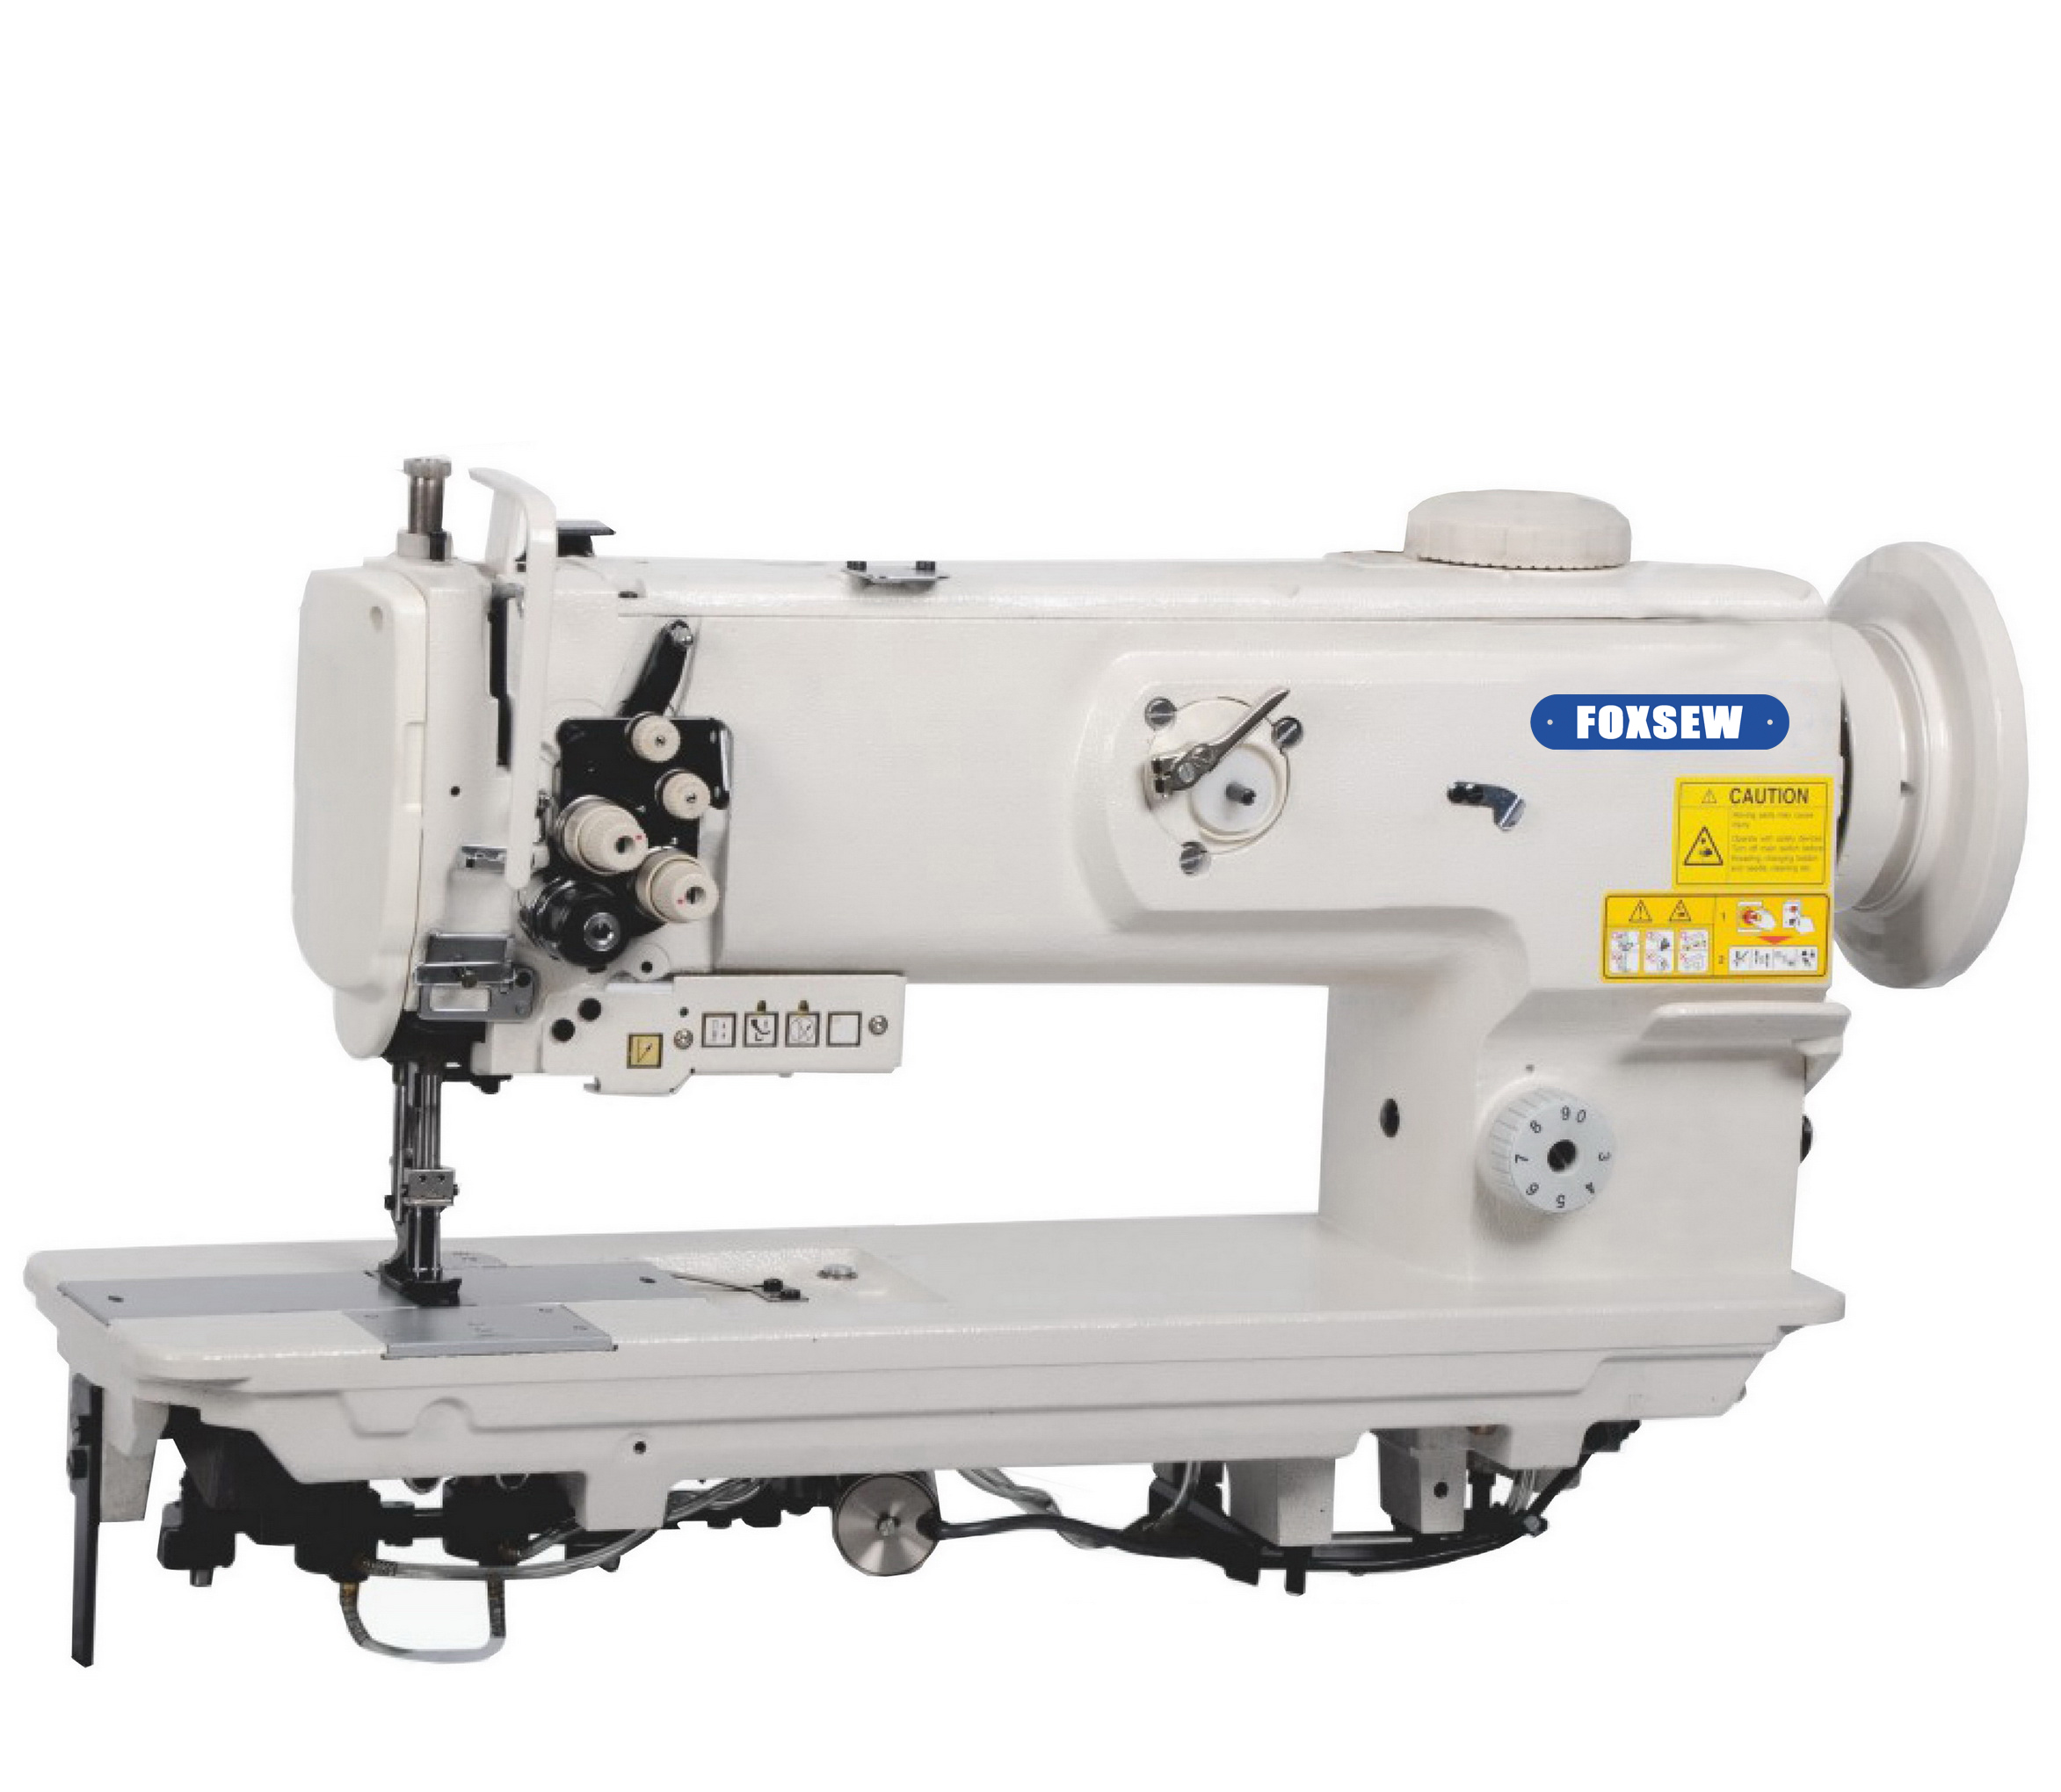 KD-1560N-L14 Double Needle Compound Feed Heavy Duty Lockstitch Machine